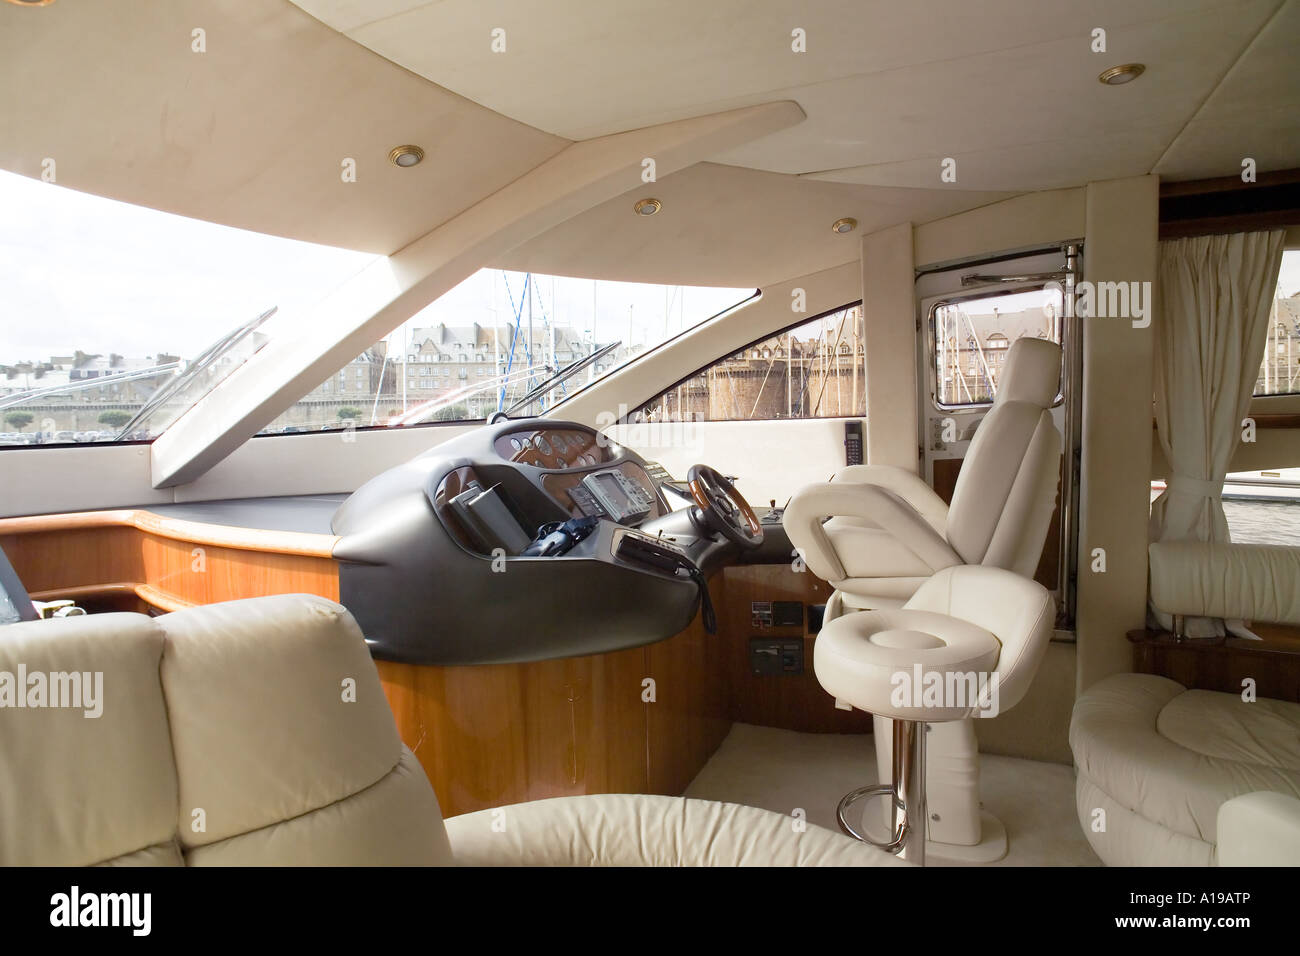 Cockpit of a private luxury yacht Stock Photo